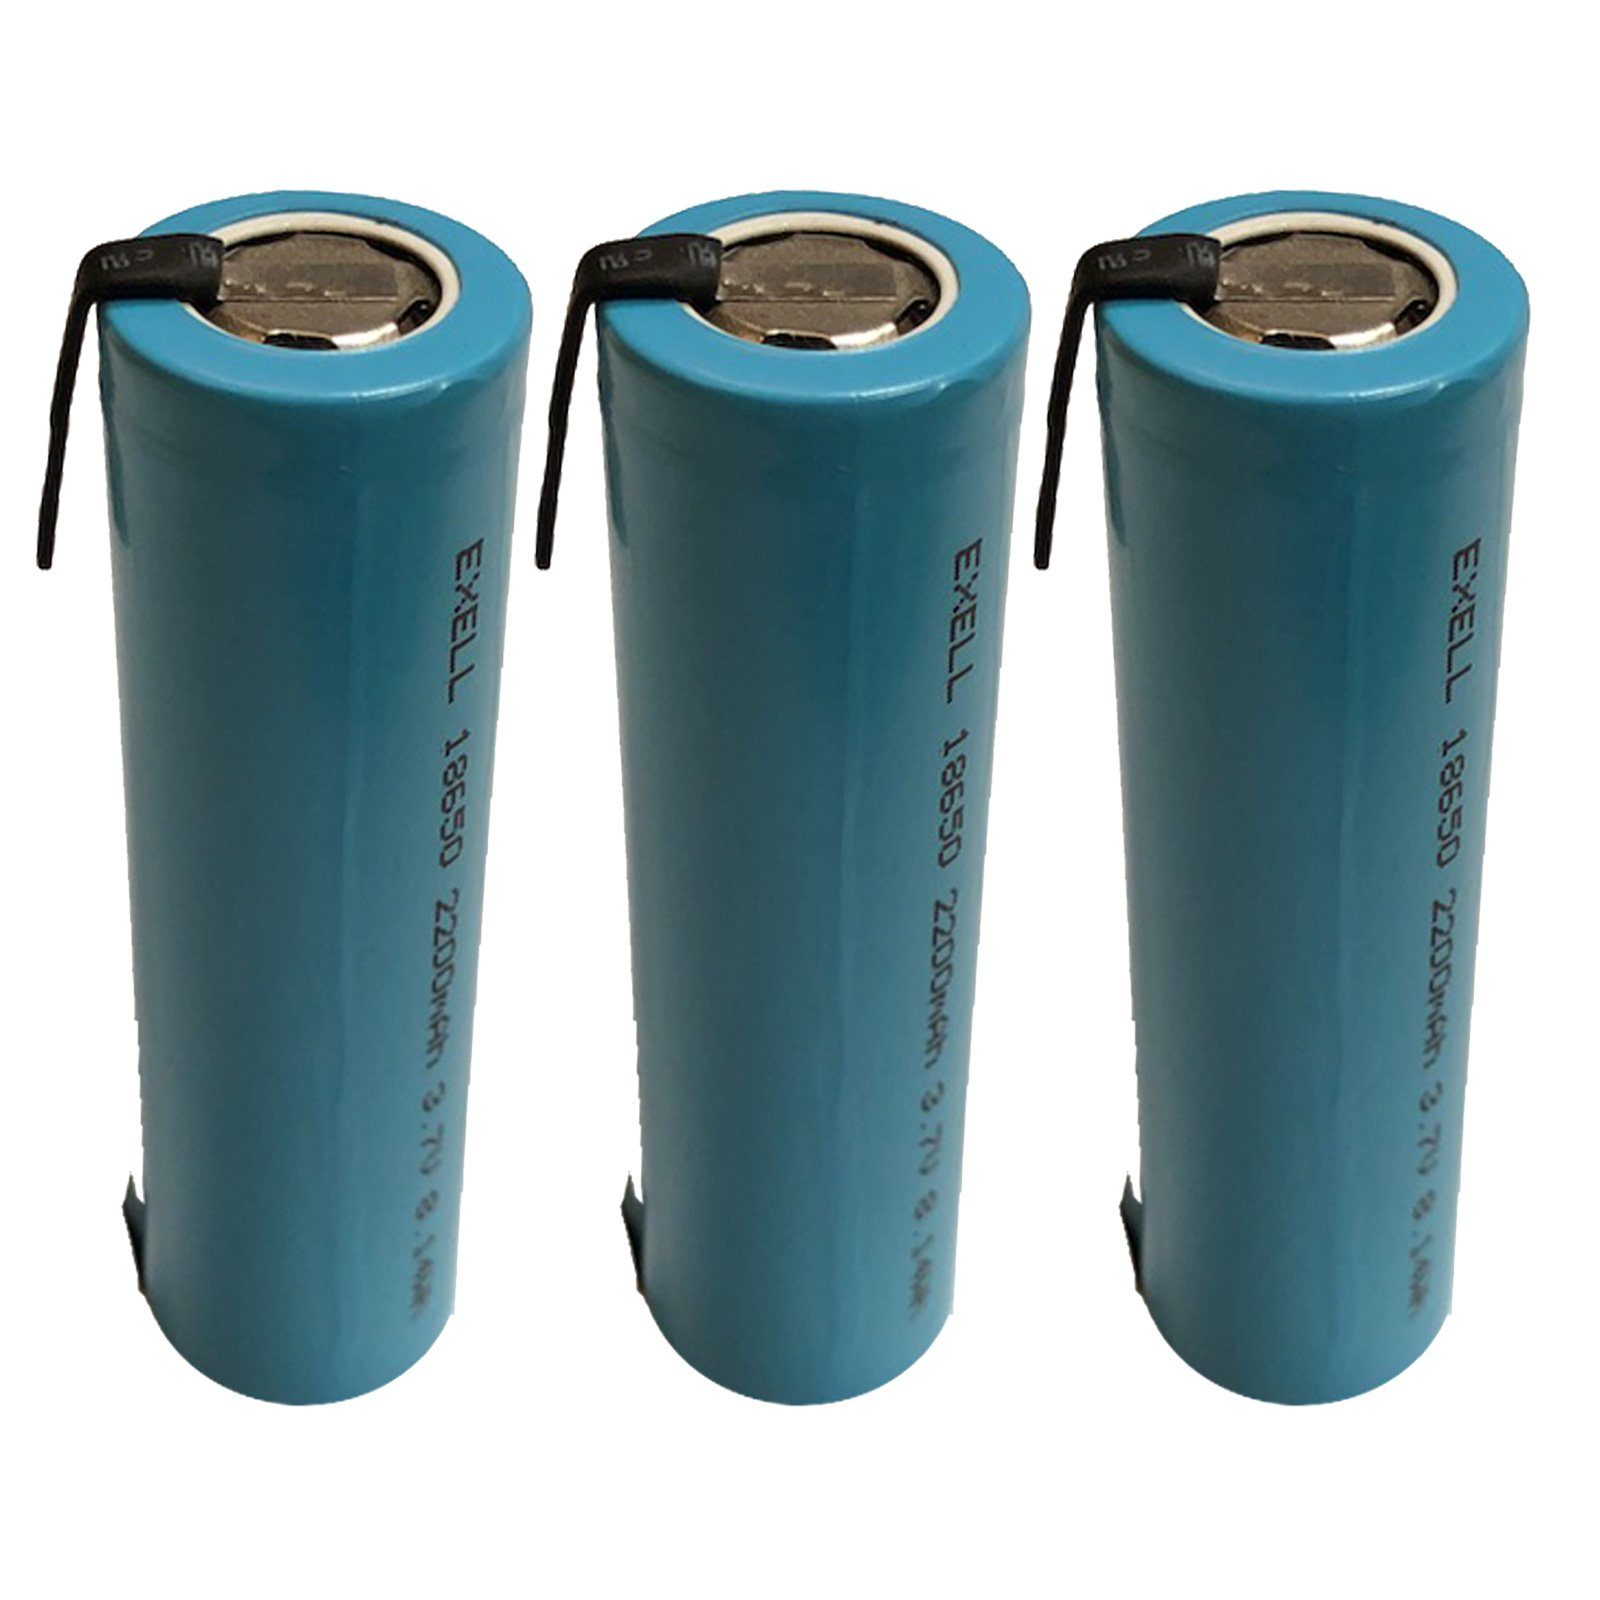 3x Exell 3.7V ICR18650 2200mAh Battery with Nickel Tabs For Solar Path Lights